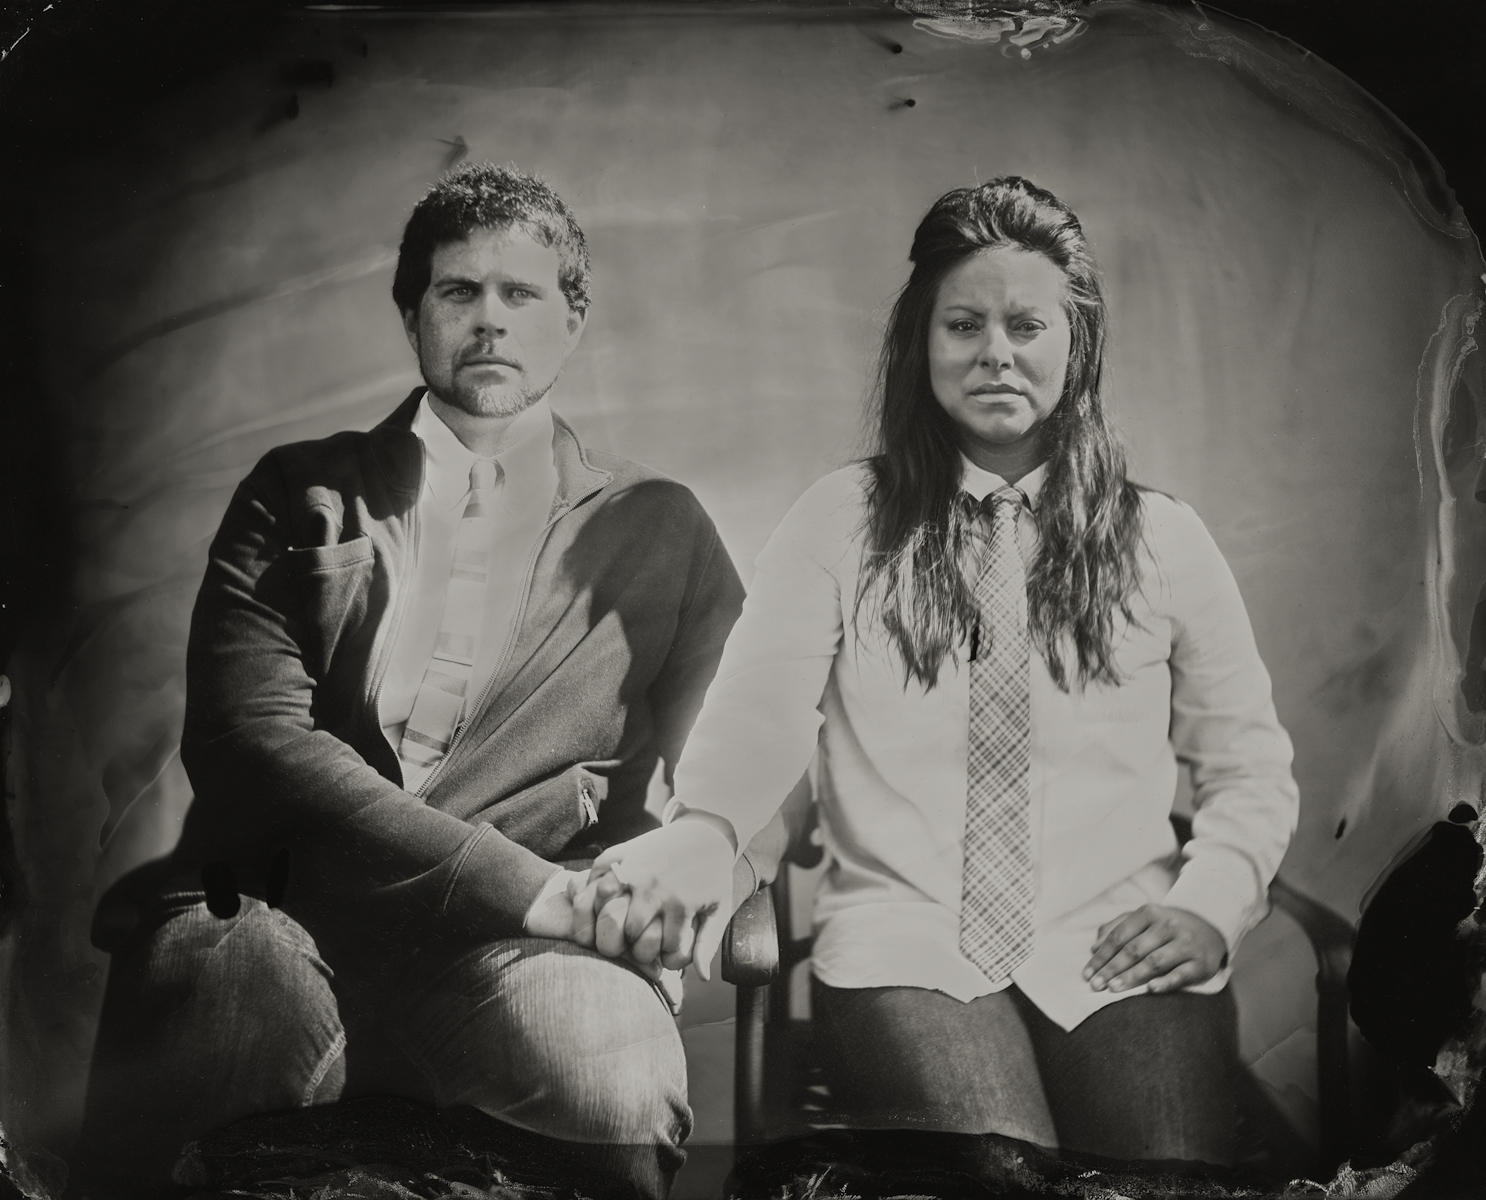 Joel and Candace, 2016